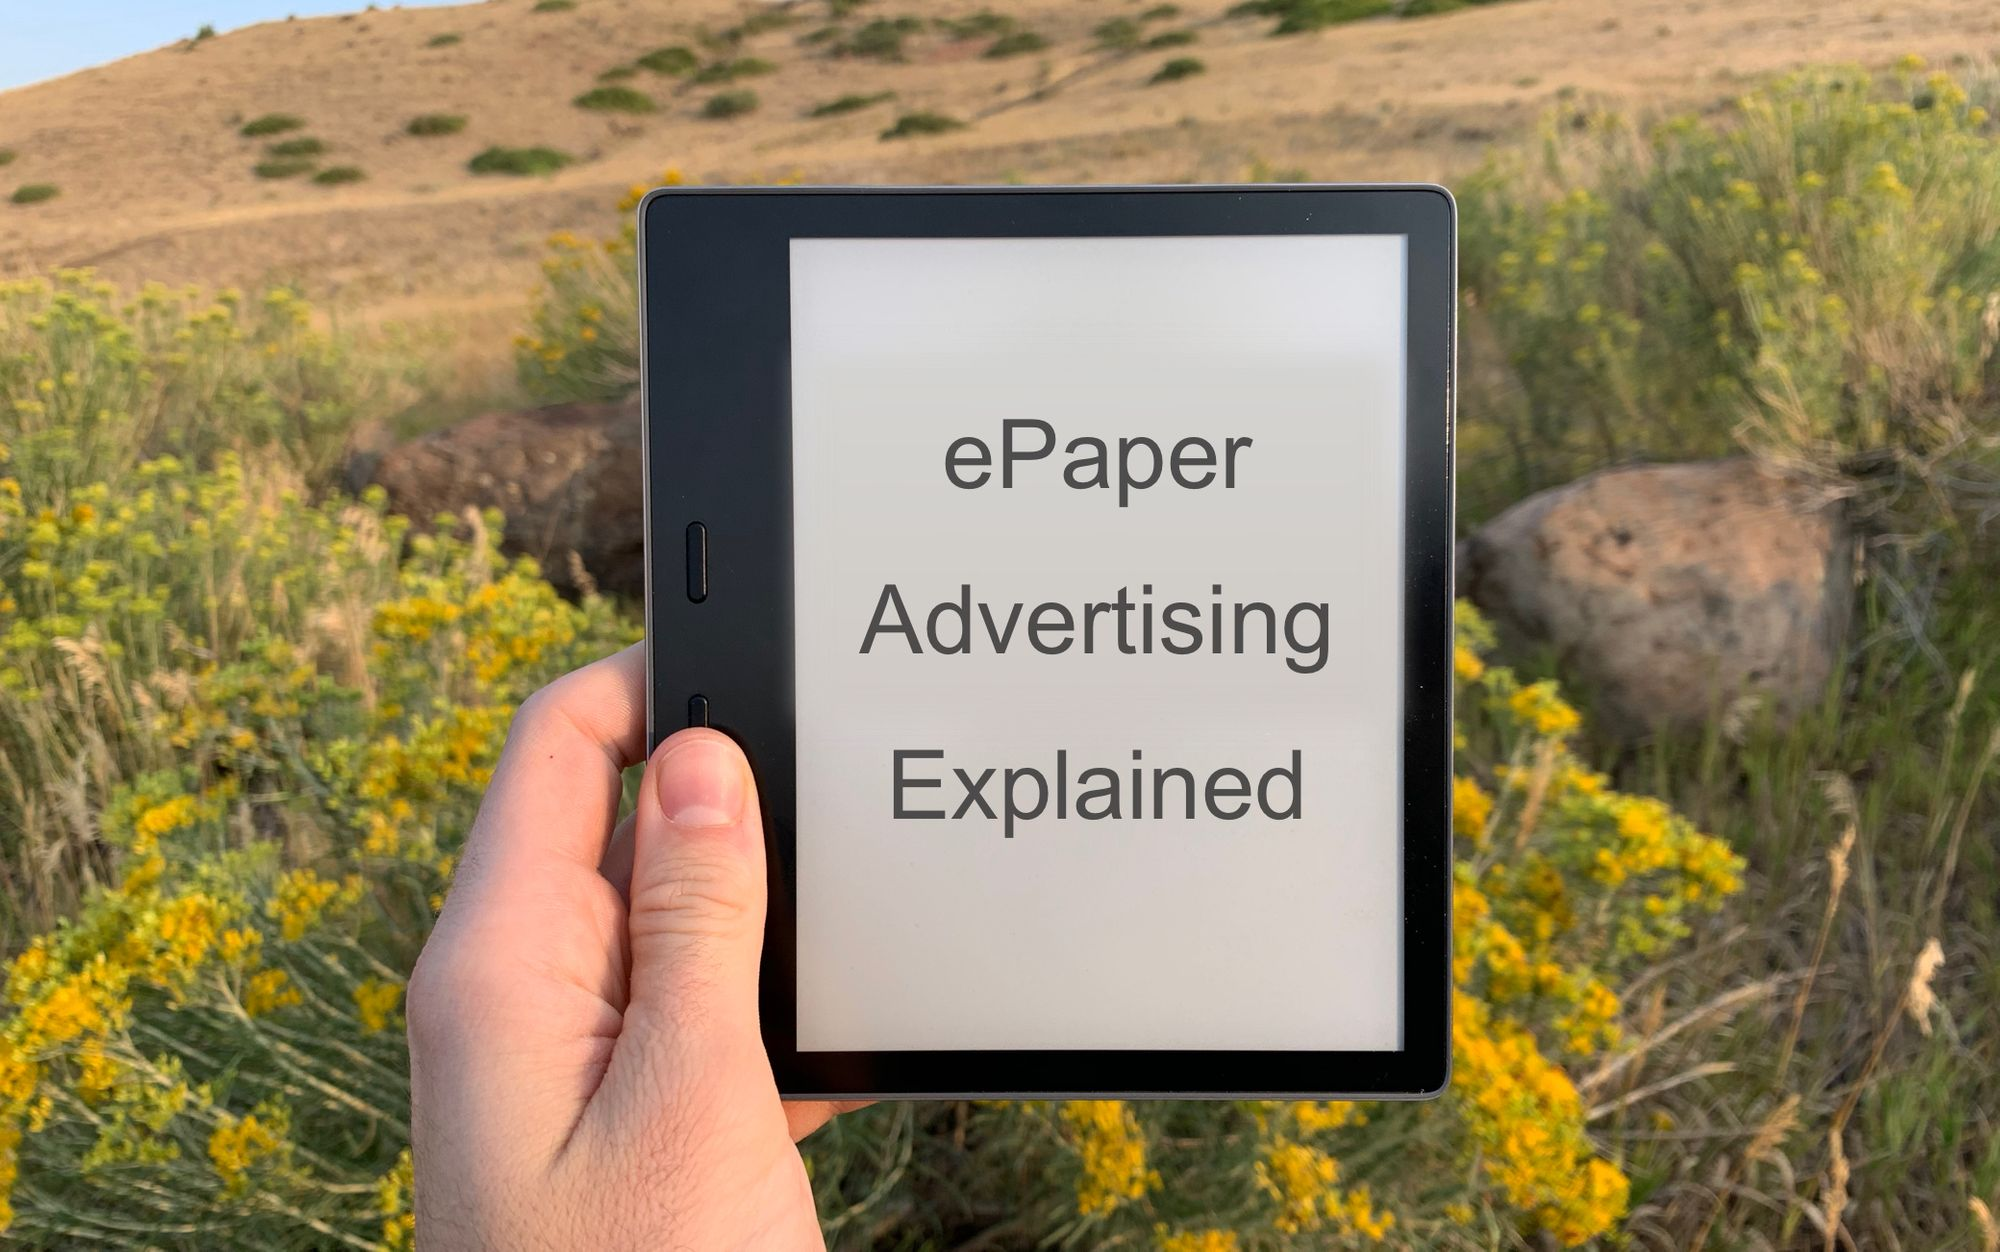 Electronic Paper (ePaper) Advertising Explained